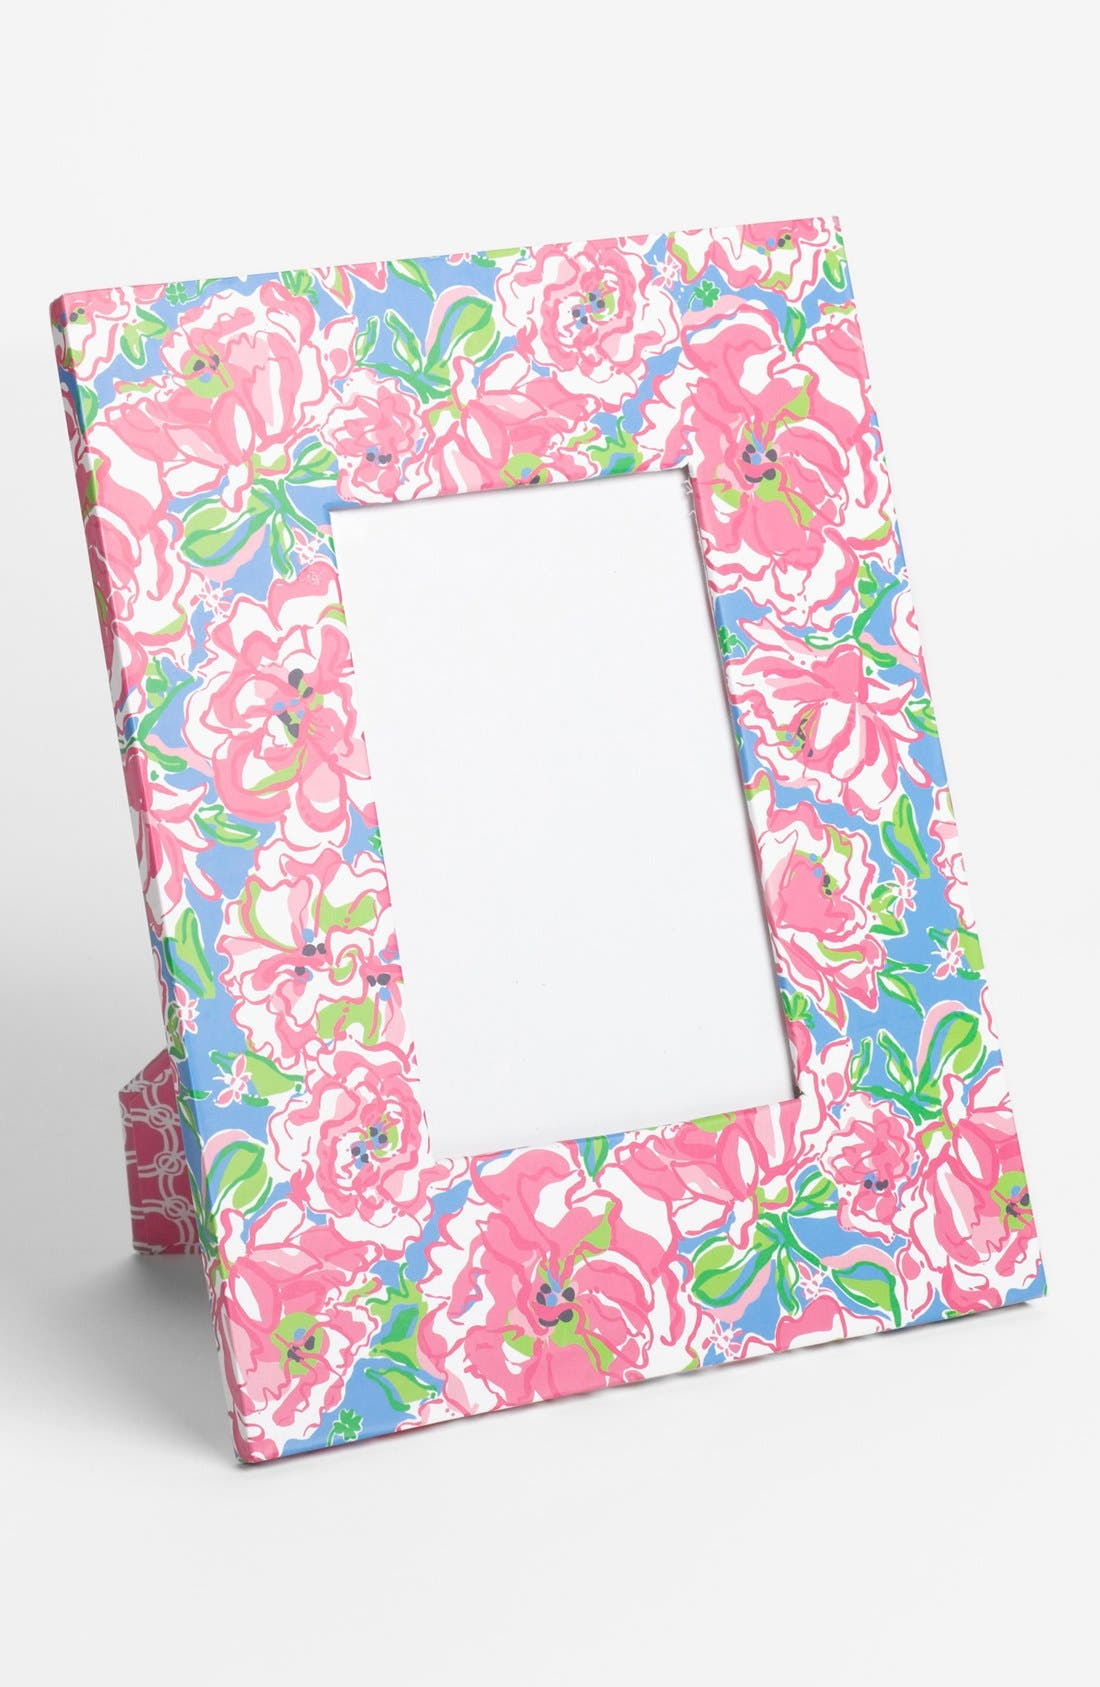 Main Image - Lilly Pulitzer® 'Lucky Charms' Picture Frame (4x6)